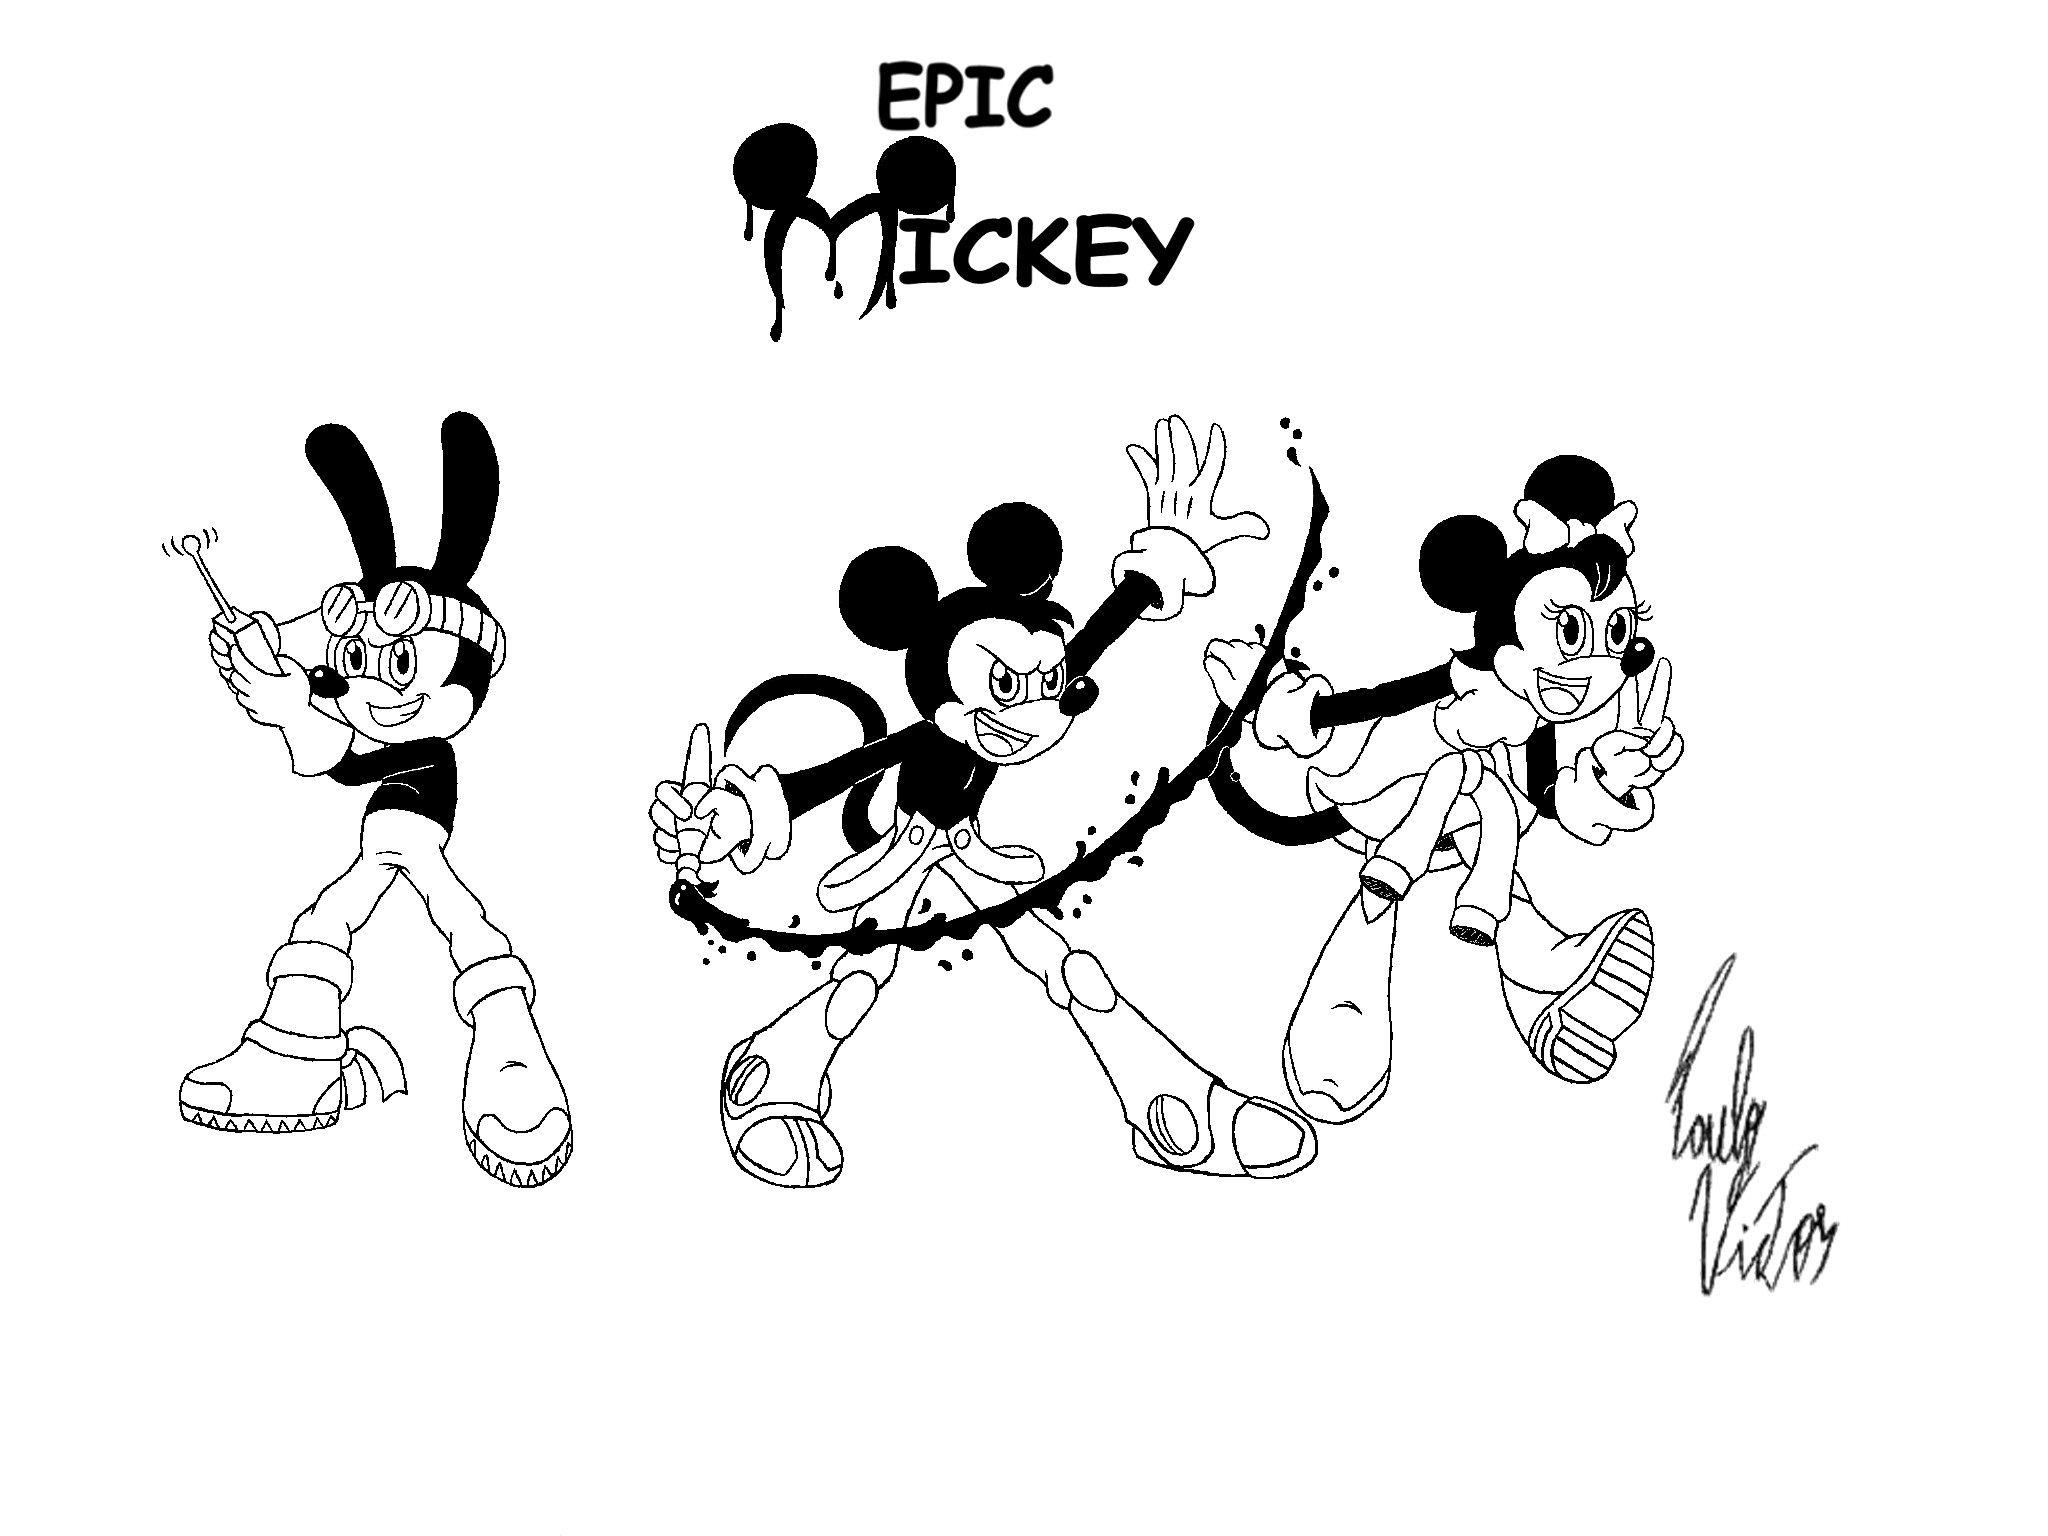 epic mickey by xpv360 on deviantart